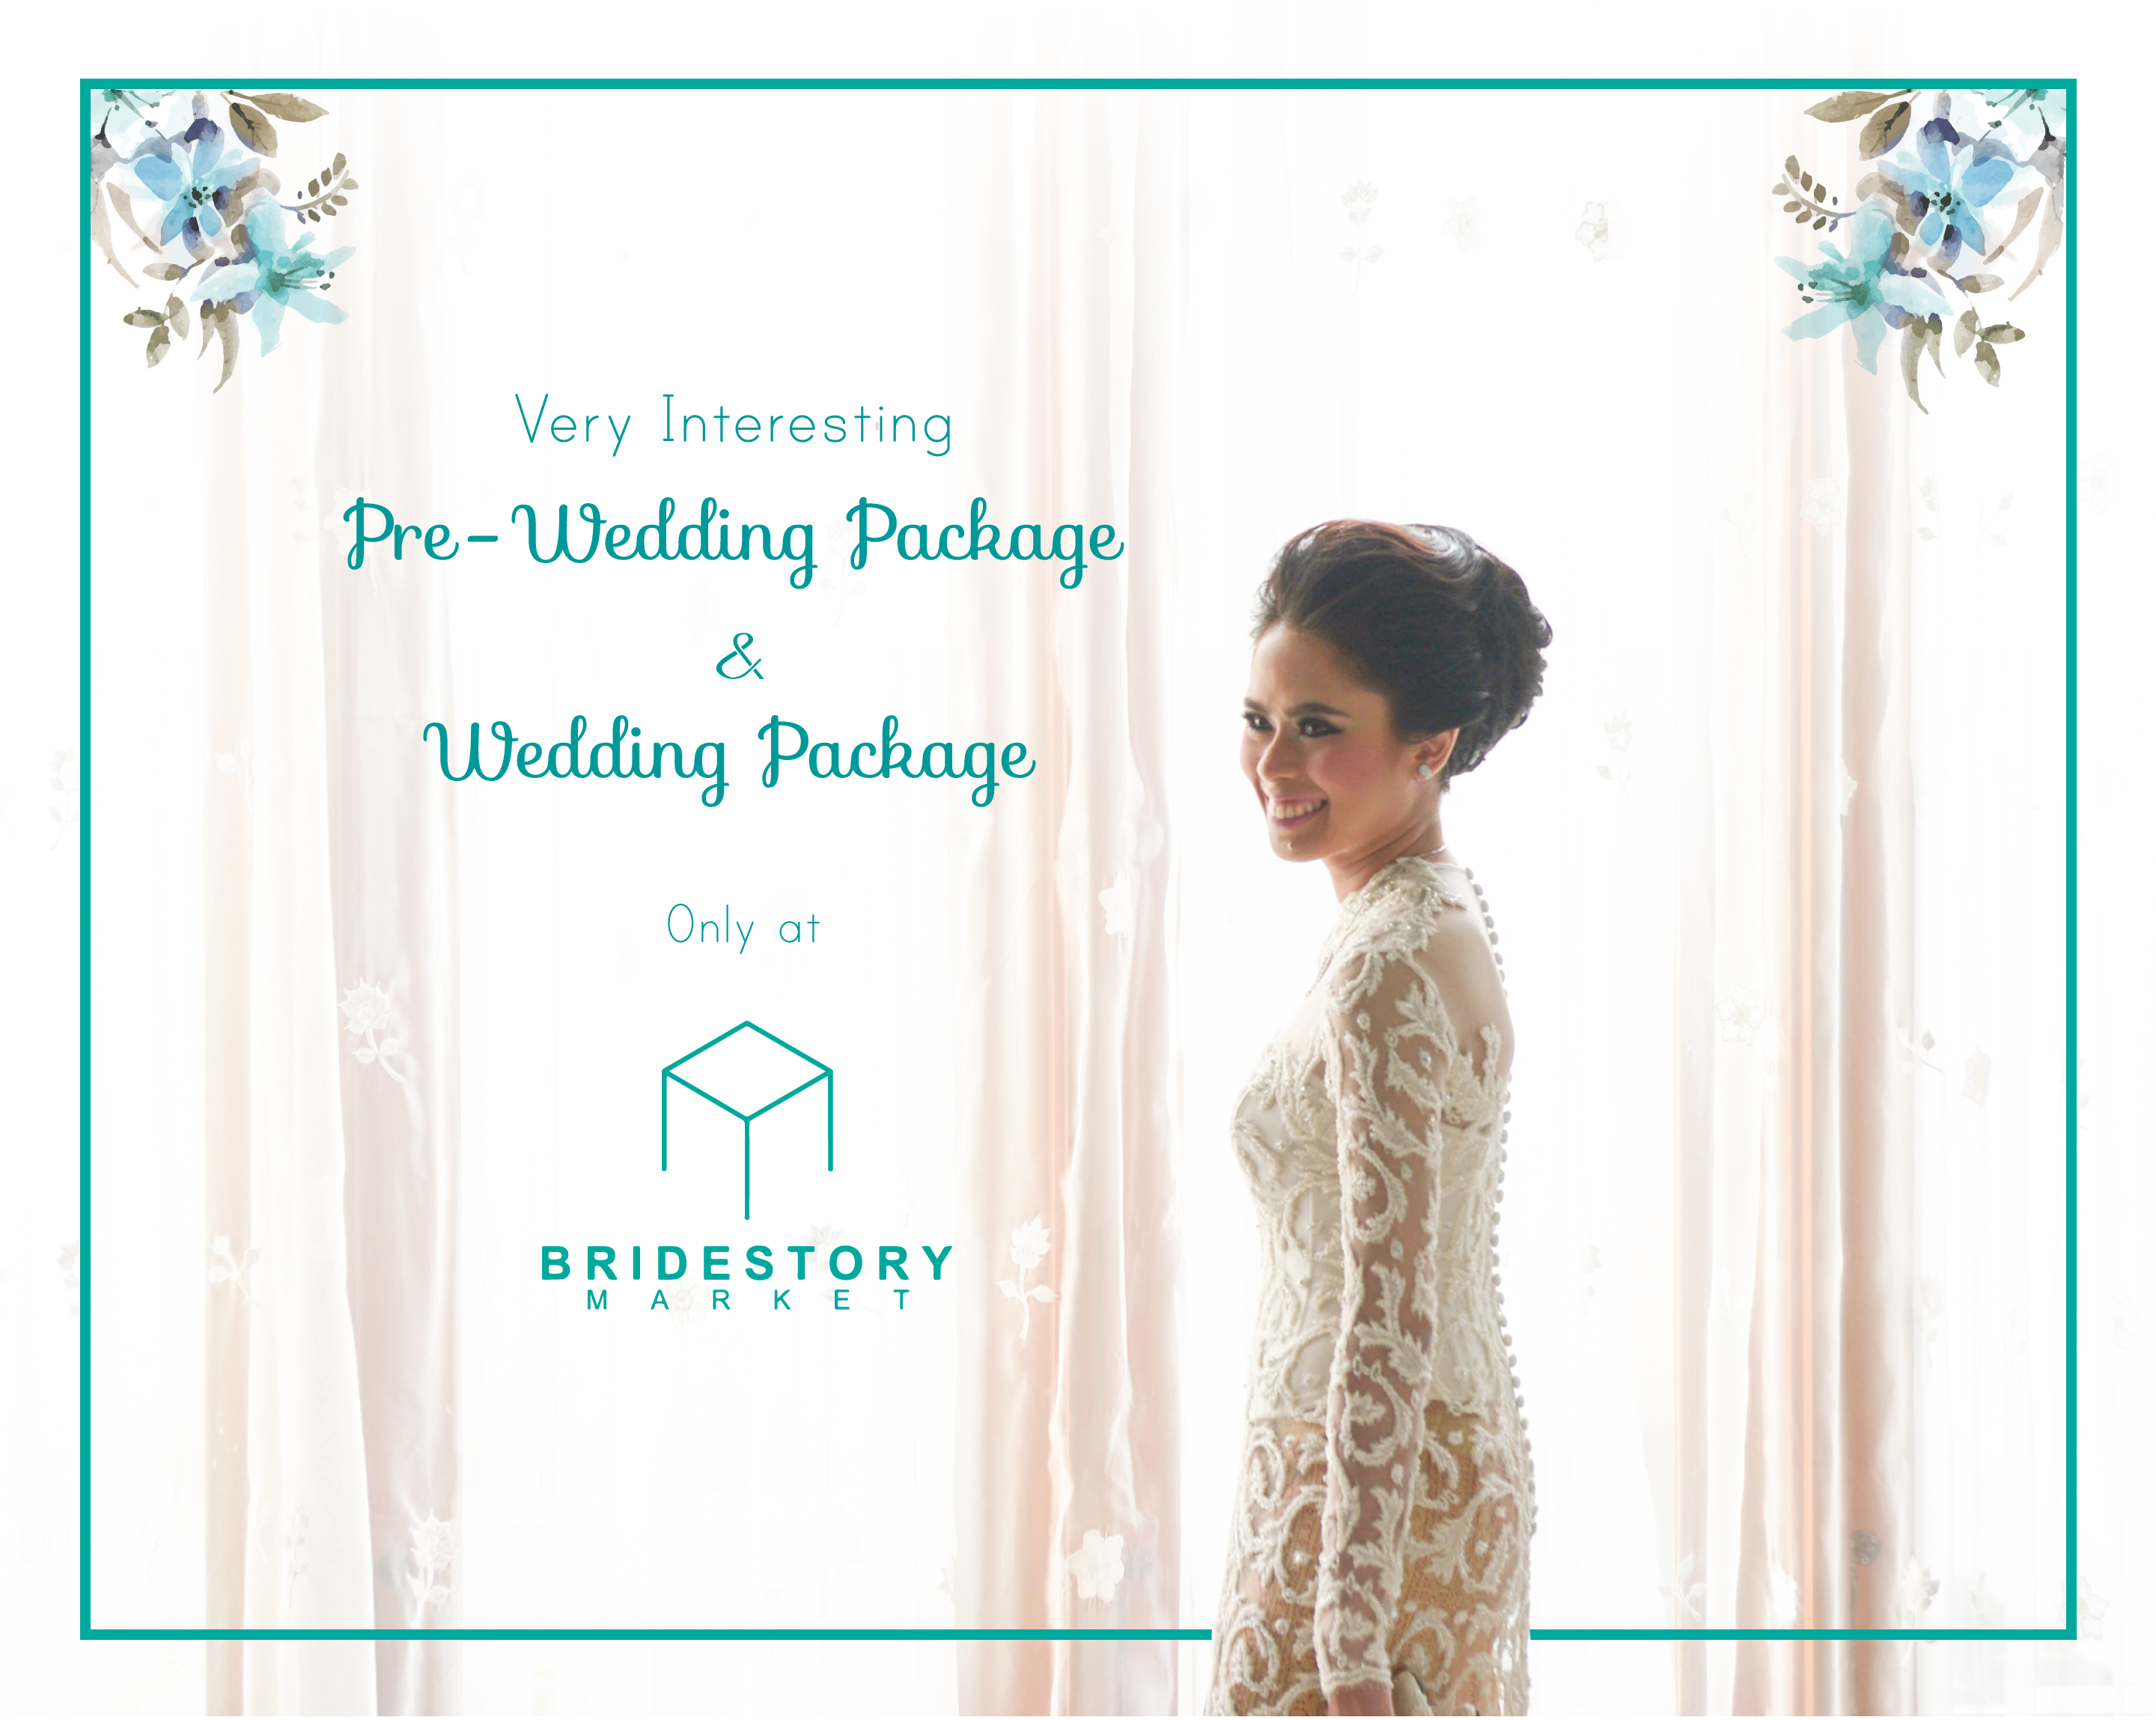 Our Very Interesting Package (VIP) Only at Bridestory Market 2017